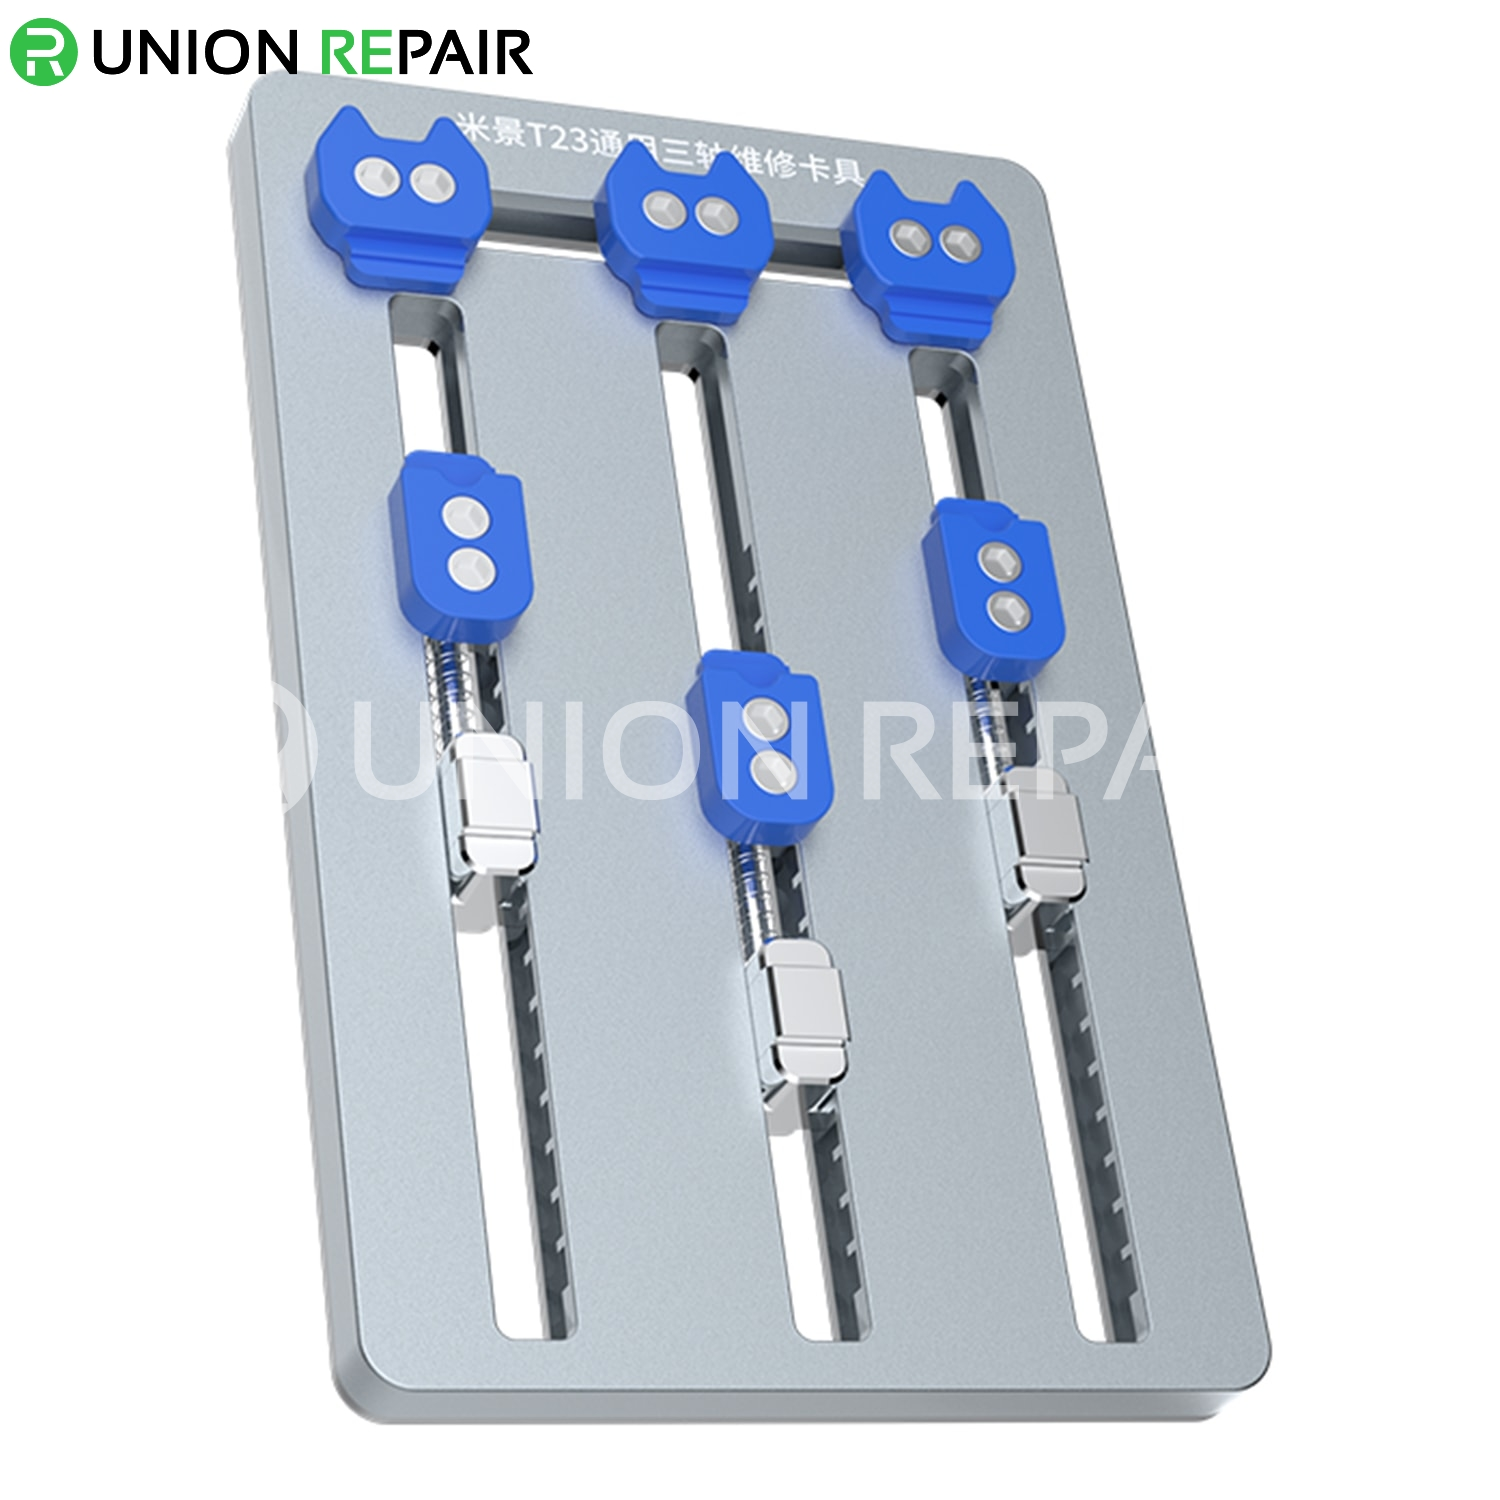 MiJing T23 Universal Triaxial Multifunction PCB Board Holder Fixture